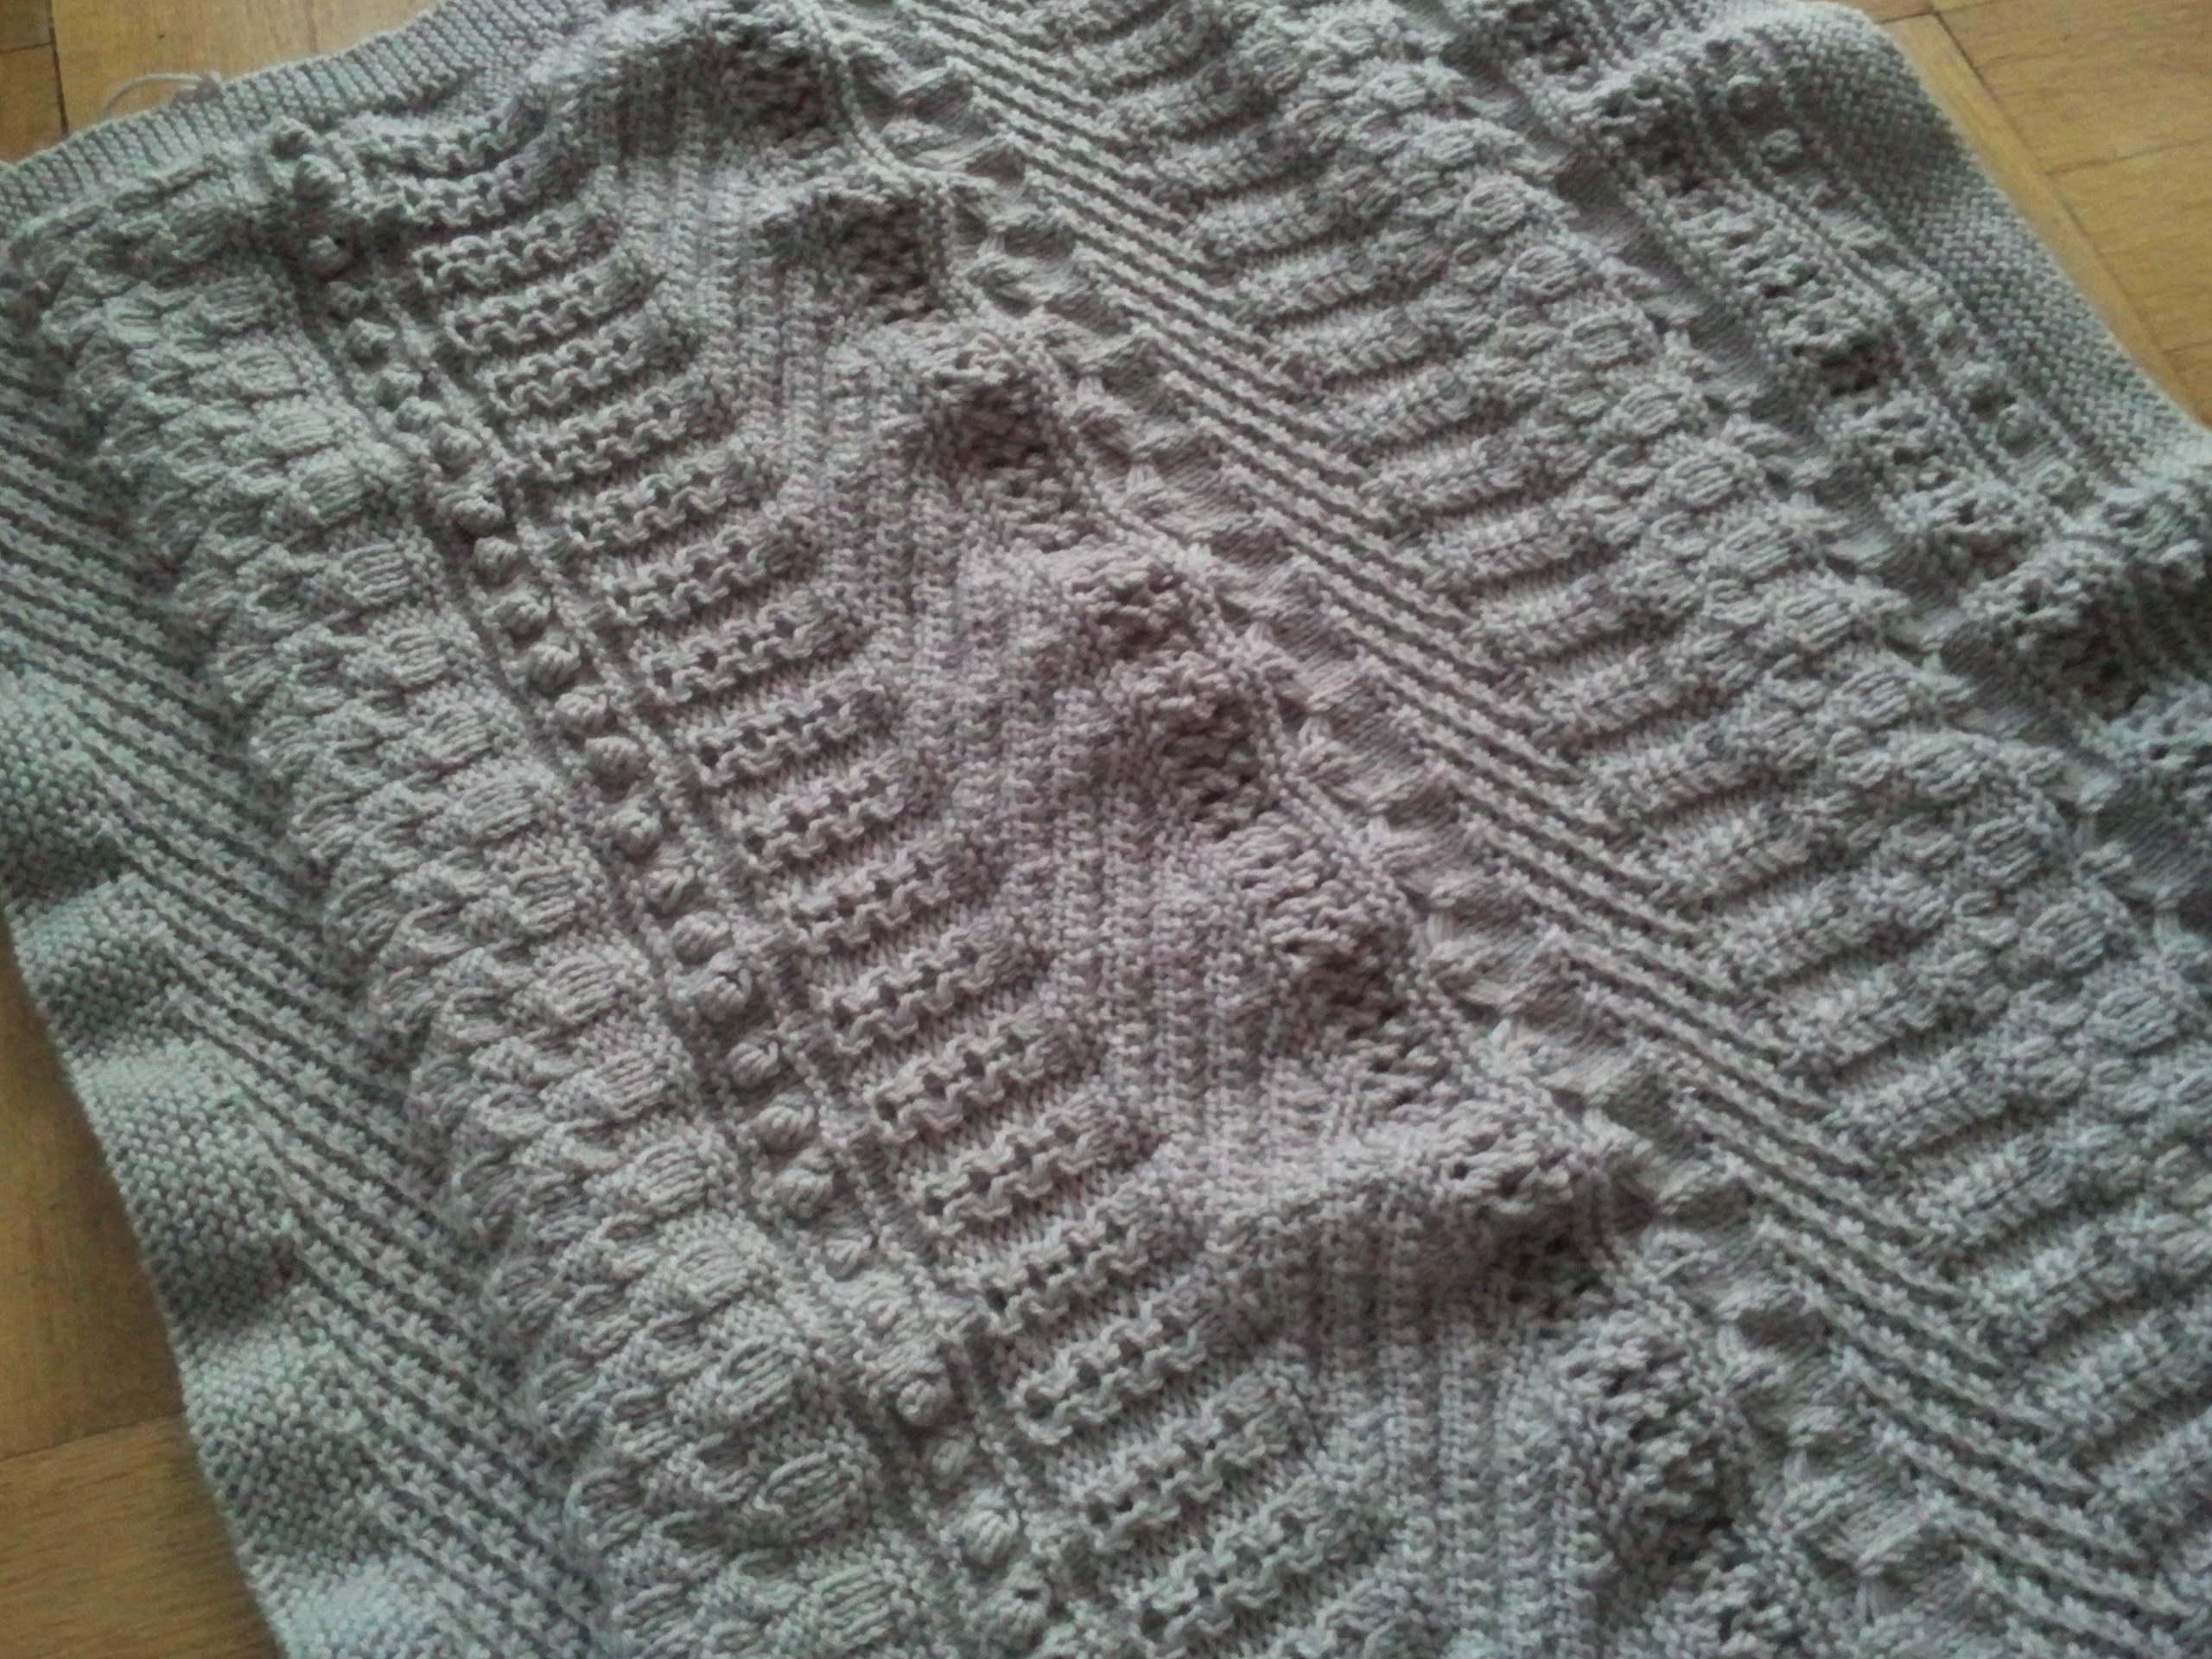 Babydecke Maße Tirees Knitting Stricken Garne